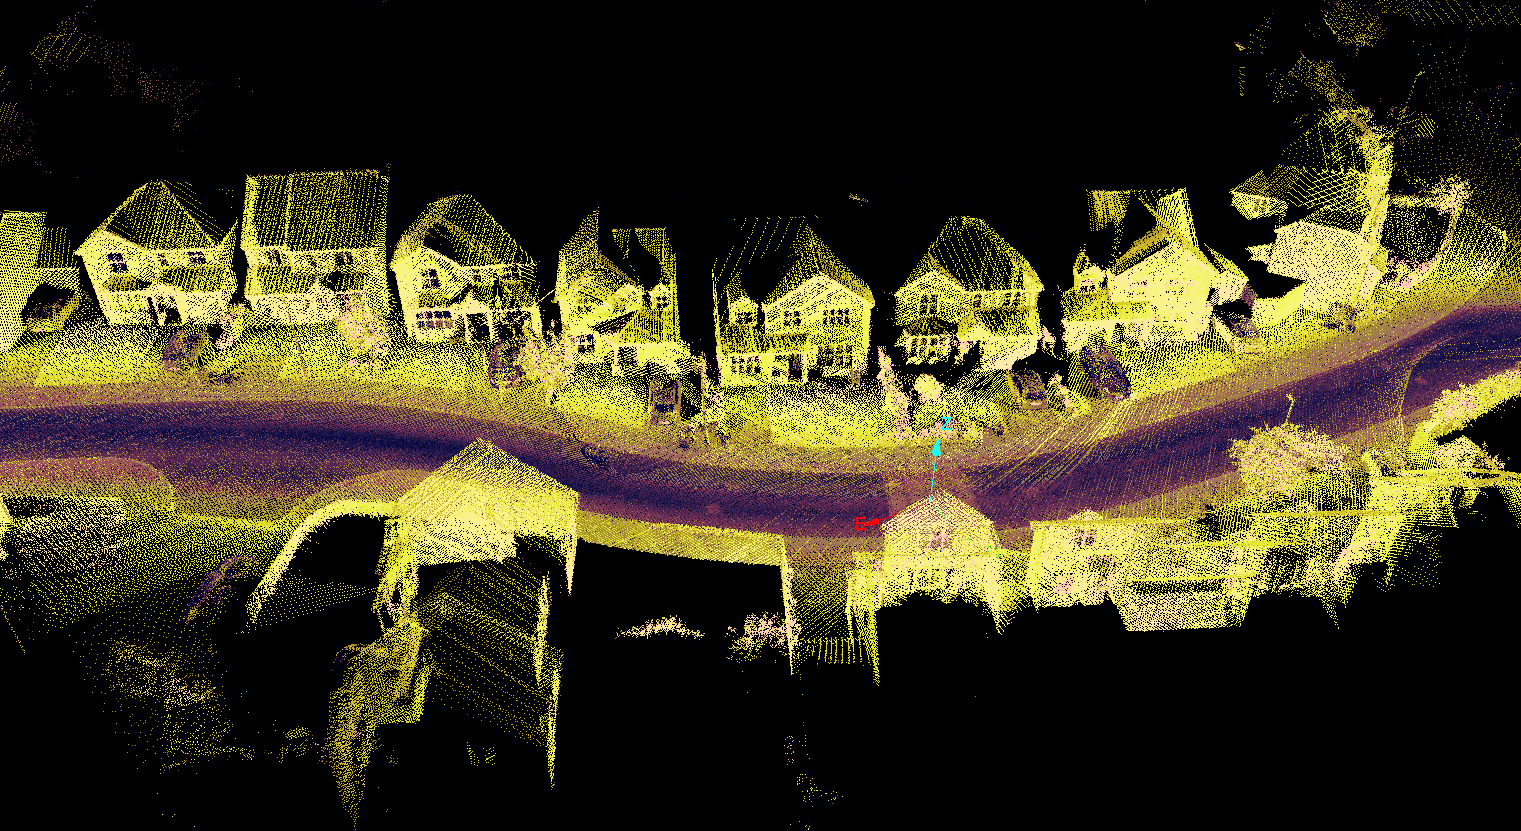 Dynascan Land Based Mobile Mapping And Surveying